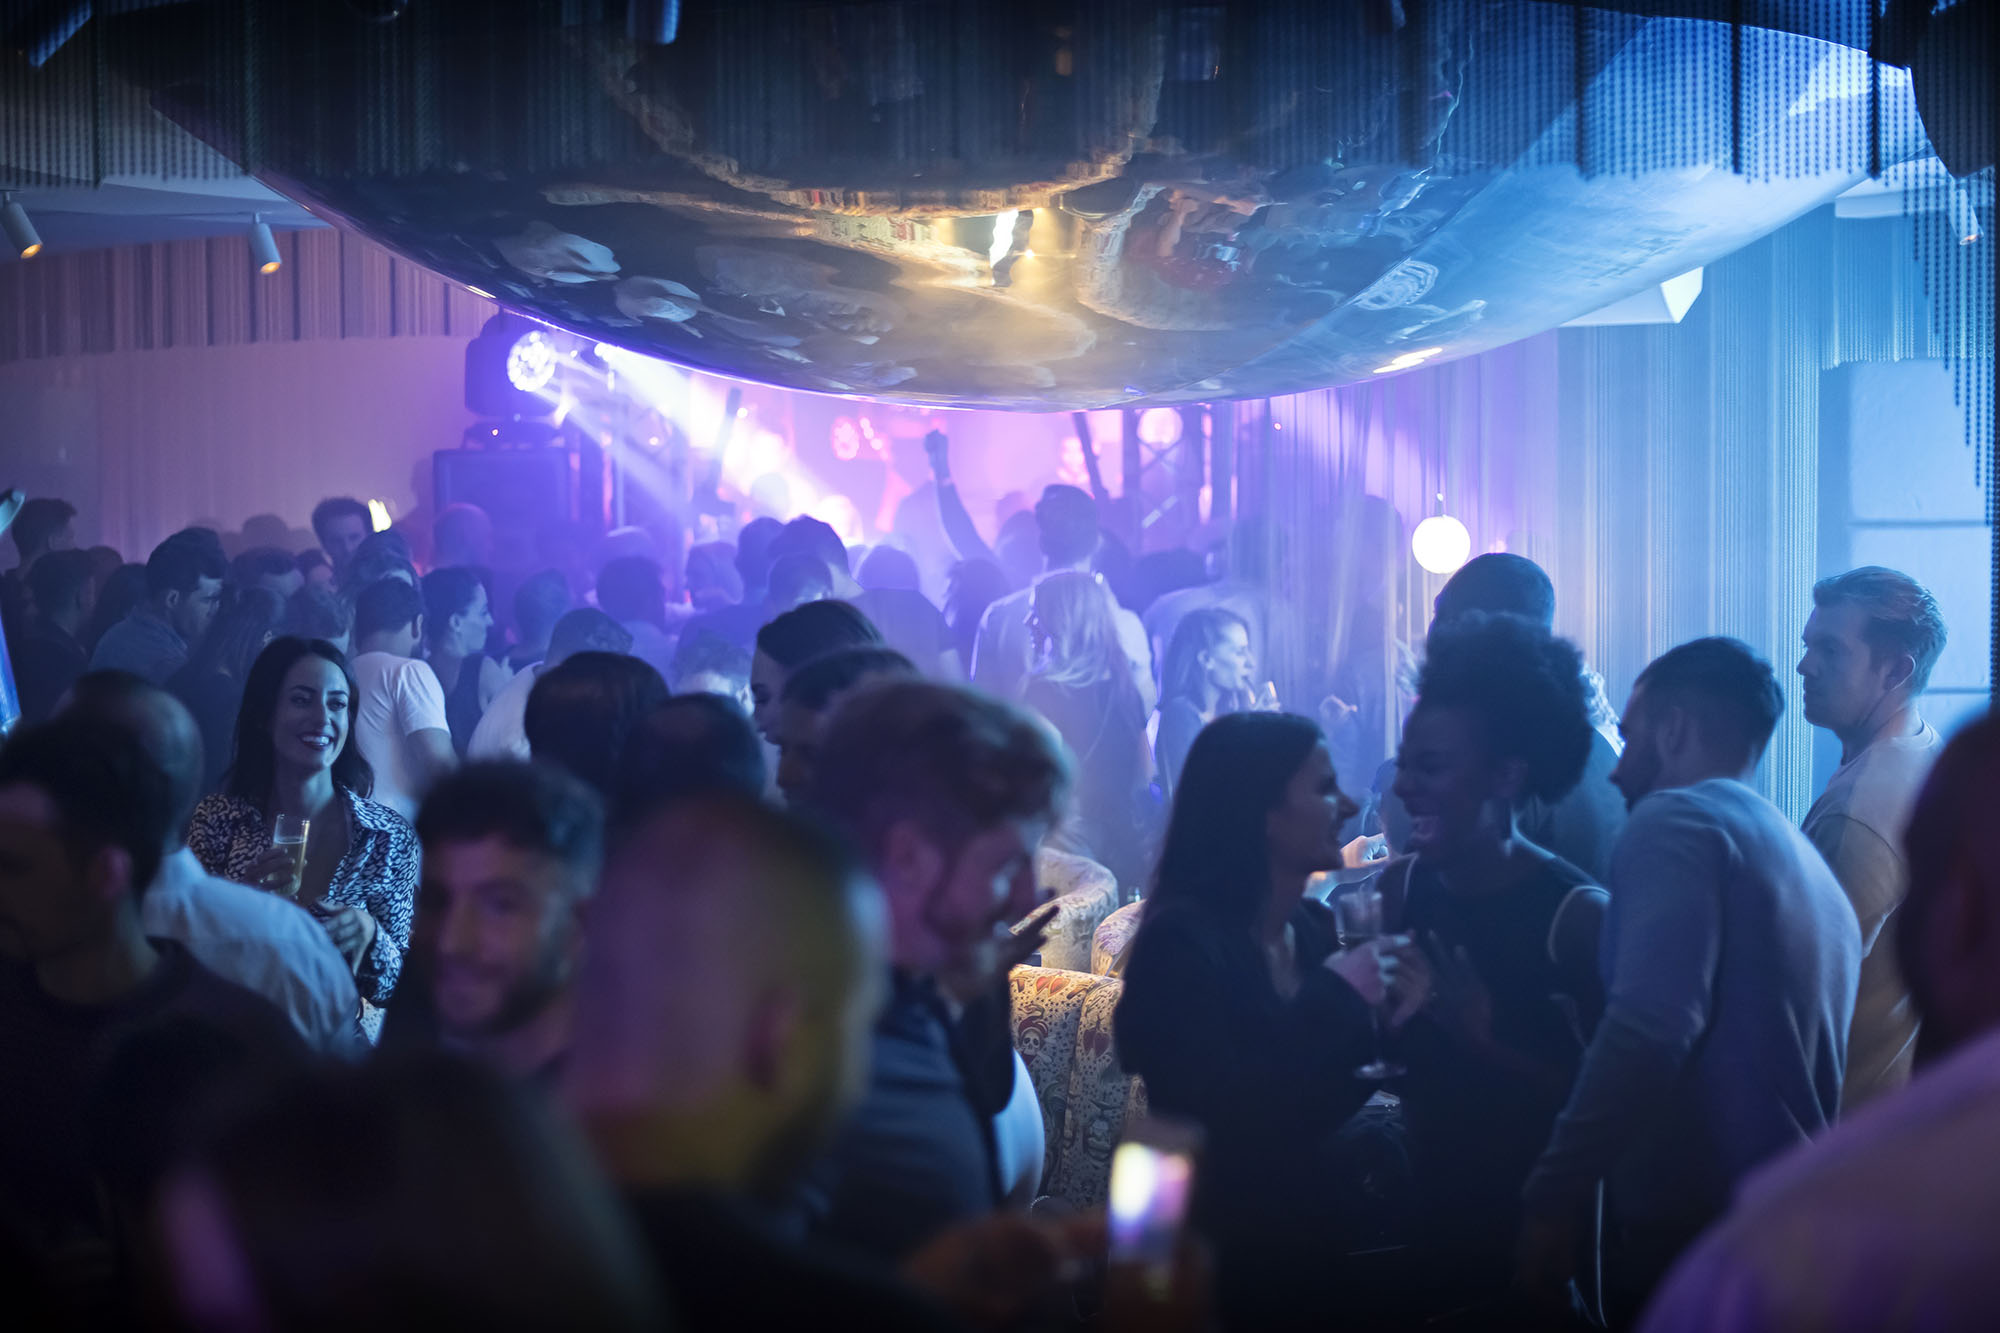 The Luxe List March 2019 - The MOODS Music Series at The Perception at W London